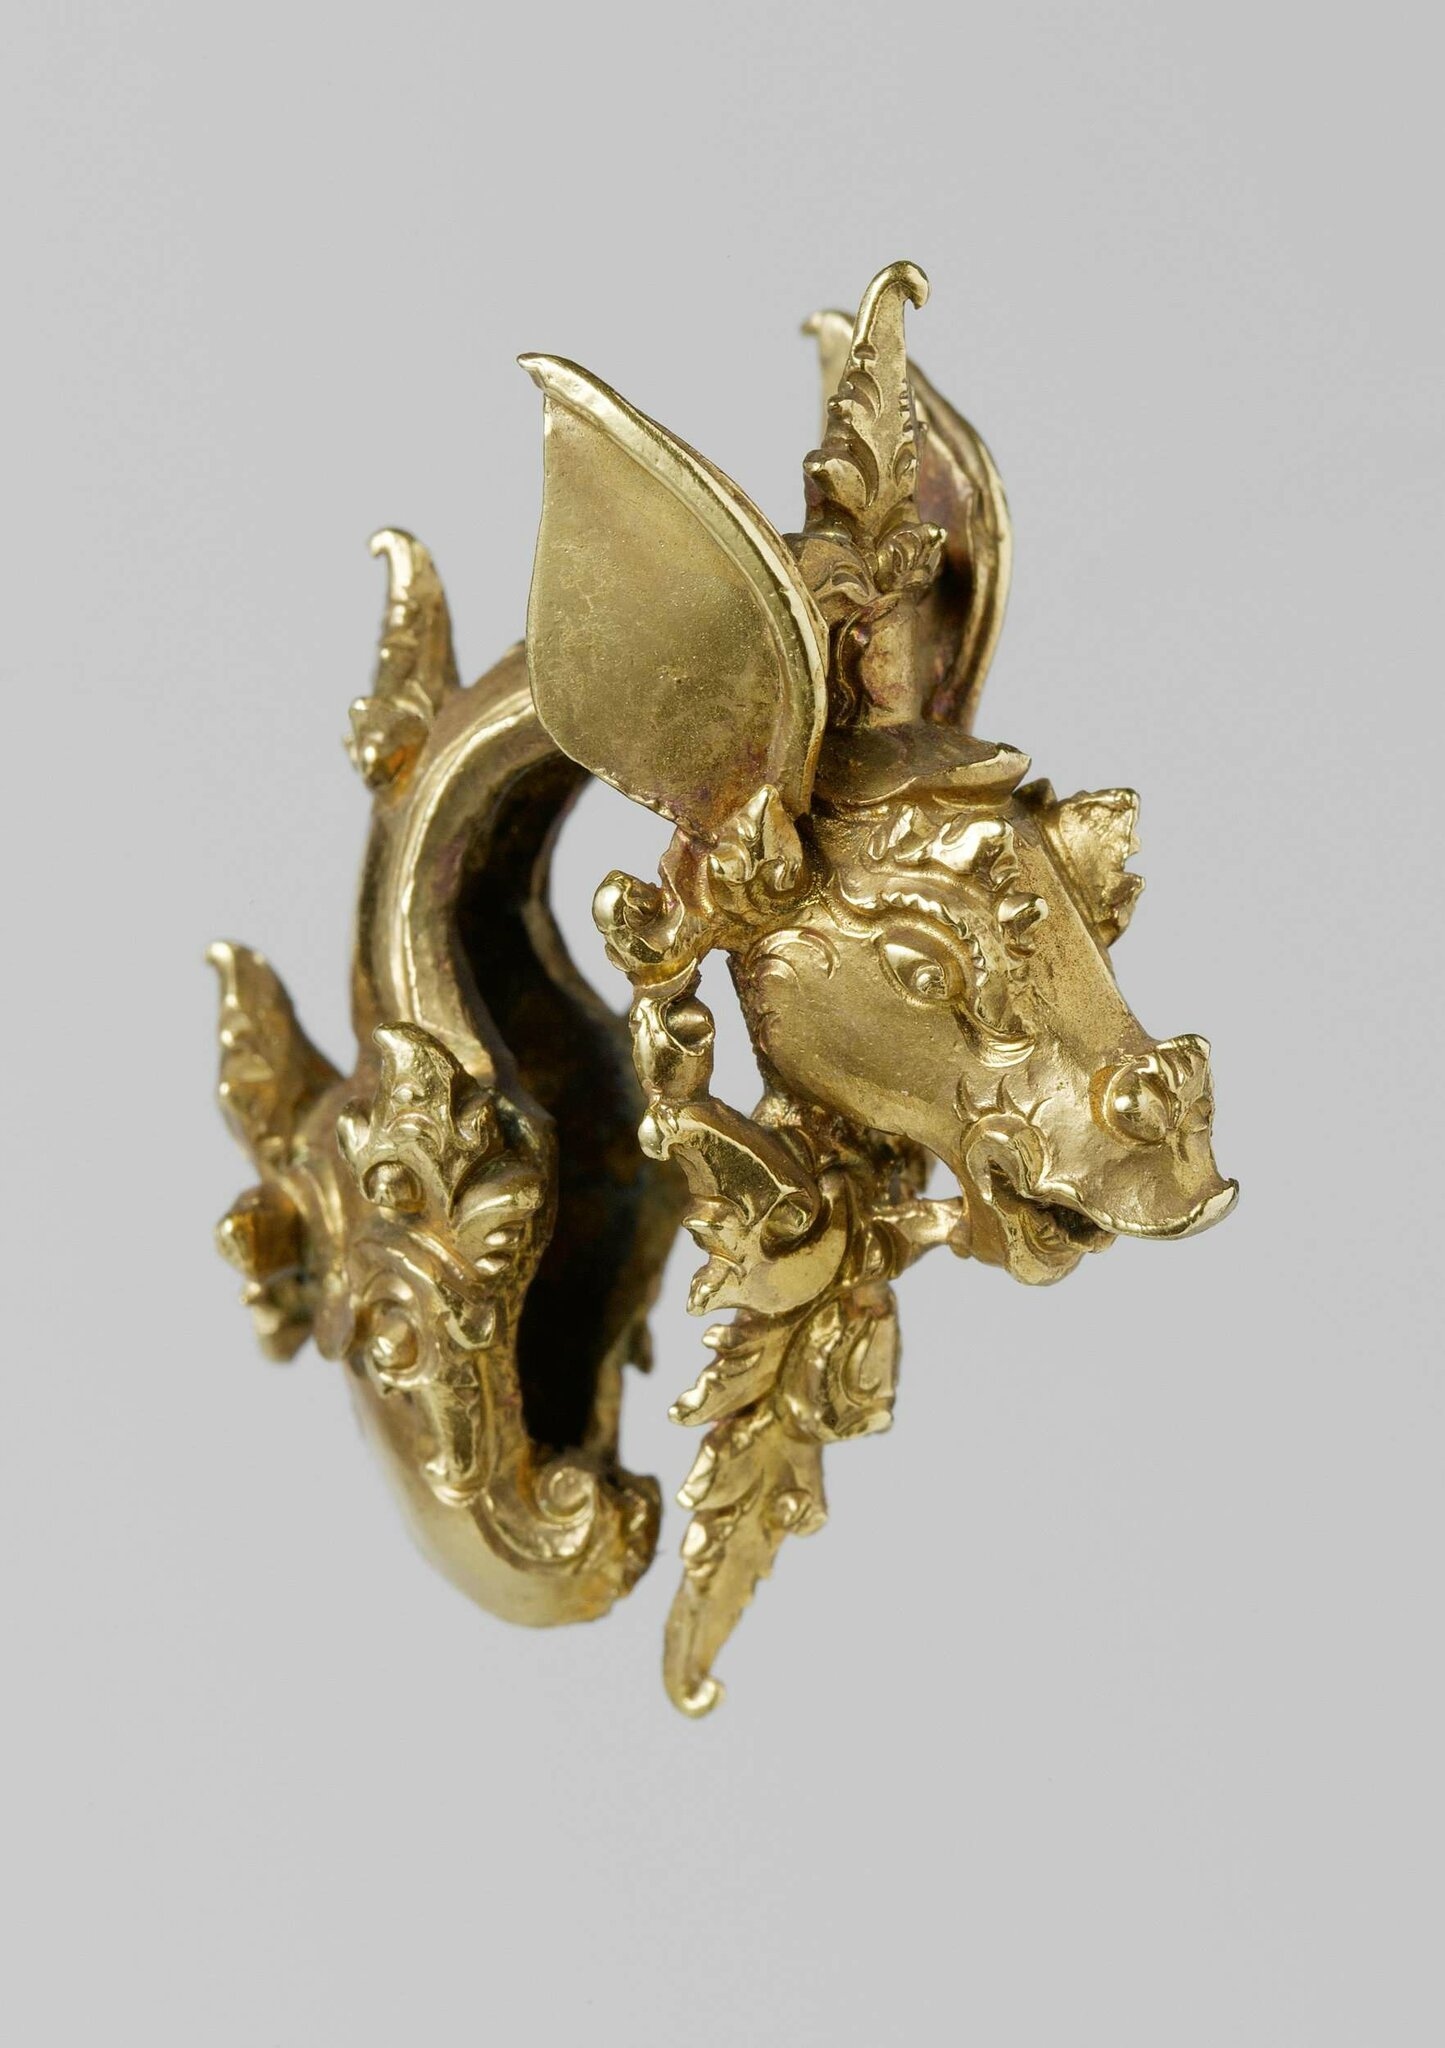 Javanese Jewellery in The Asian Pavilion, Rijksmuseum, Amsterdam